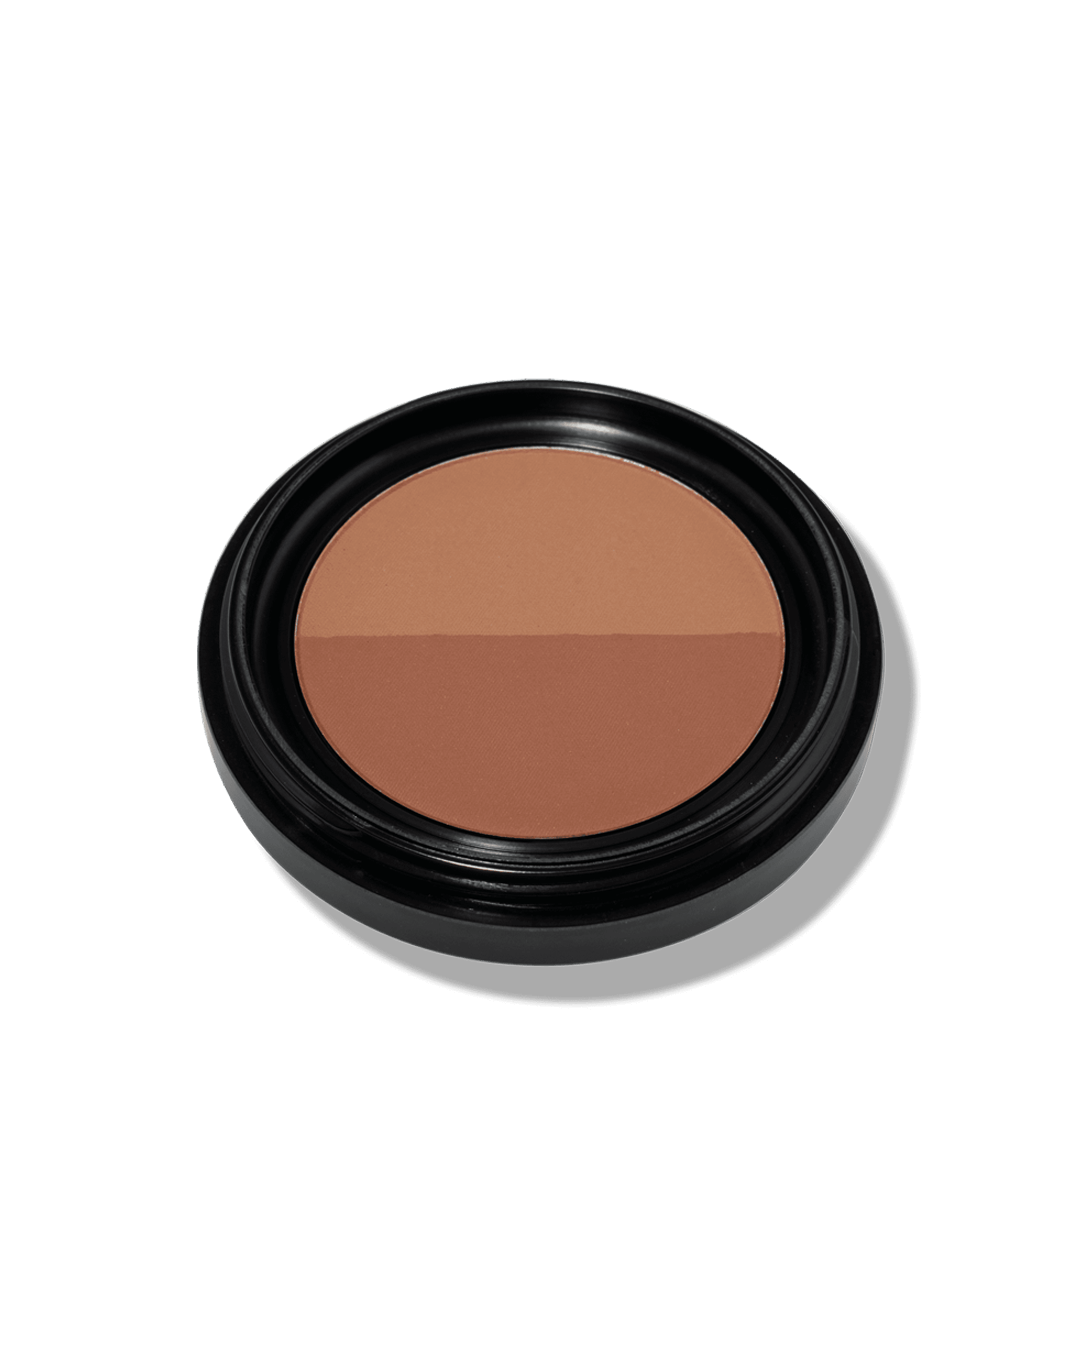 Custom contour duo sheer matte finish